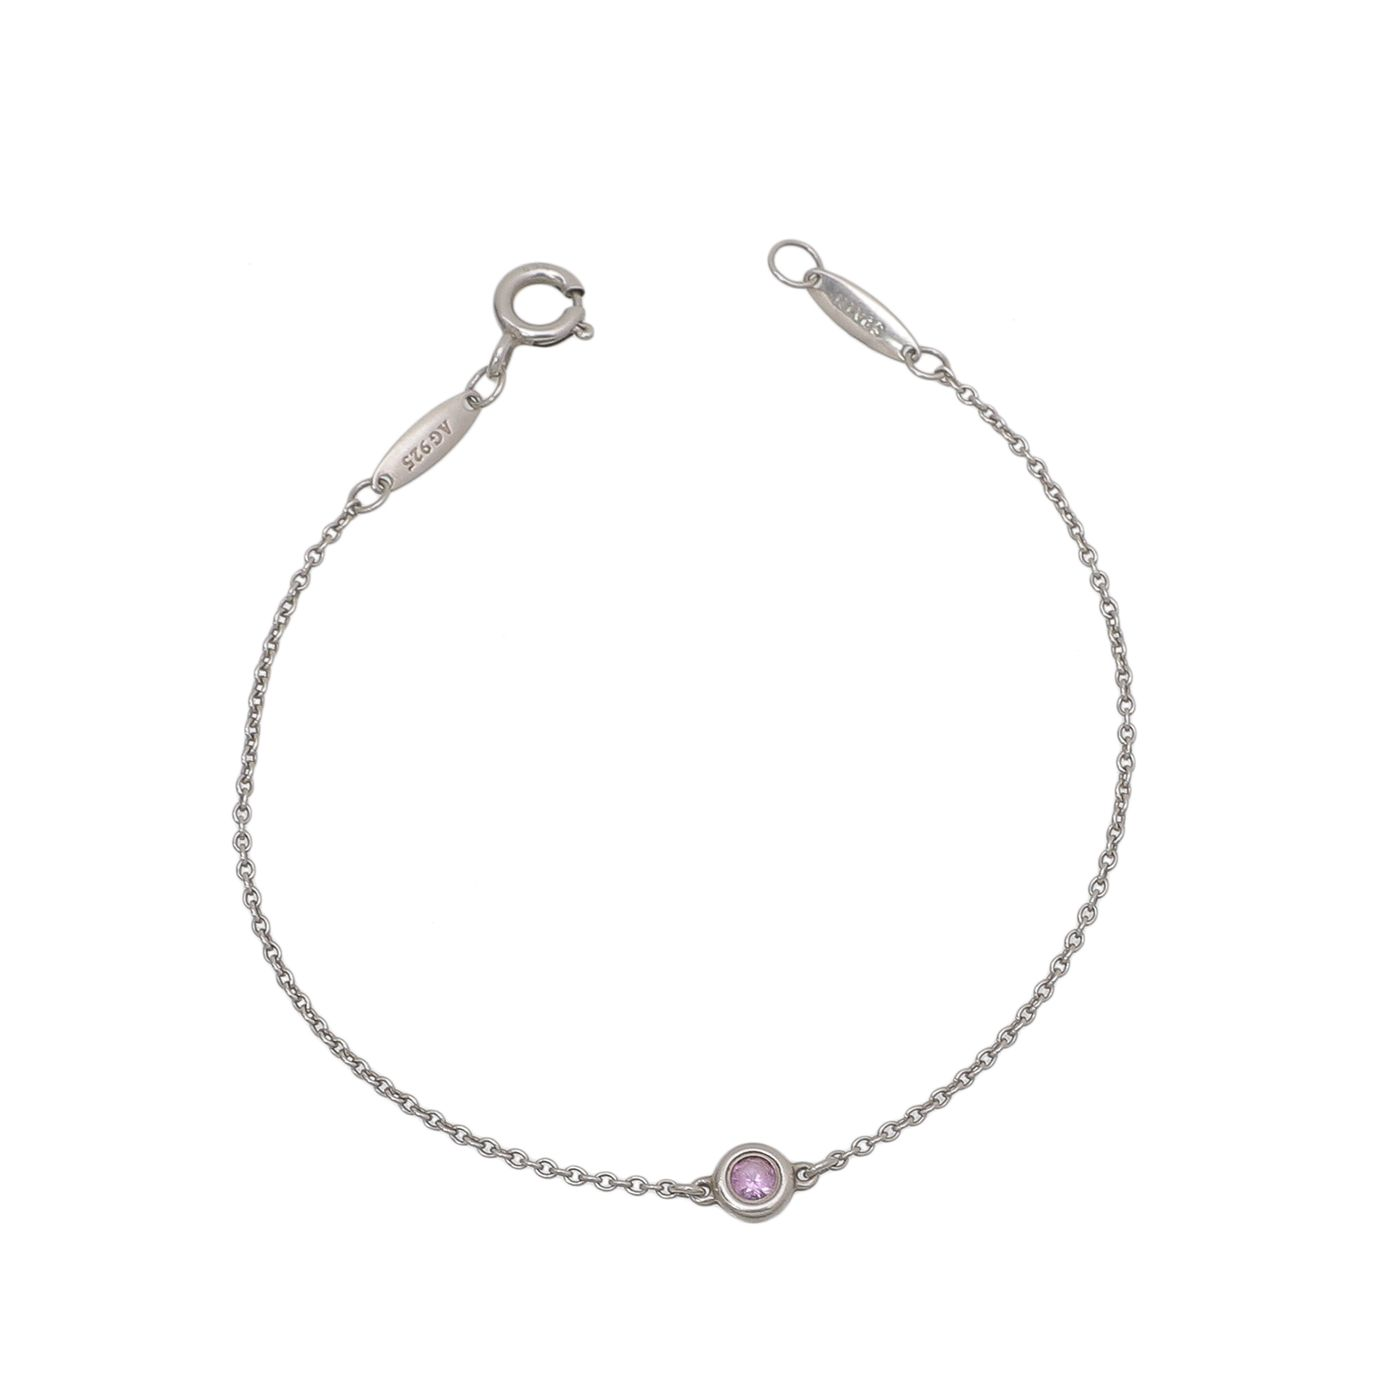 Tiffany & Co. Silver Color By The Yard with Pink Sapphire Bracelet